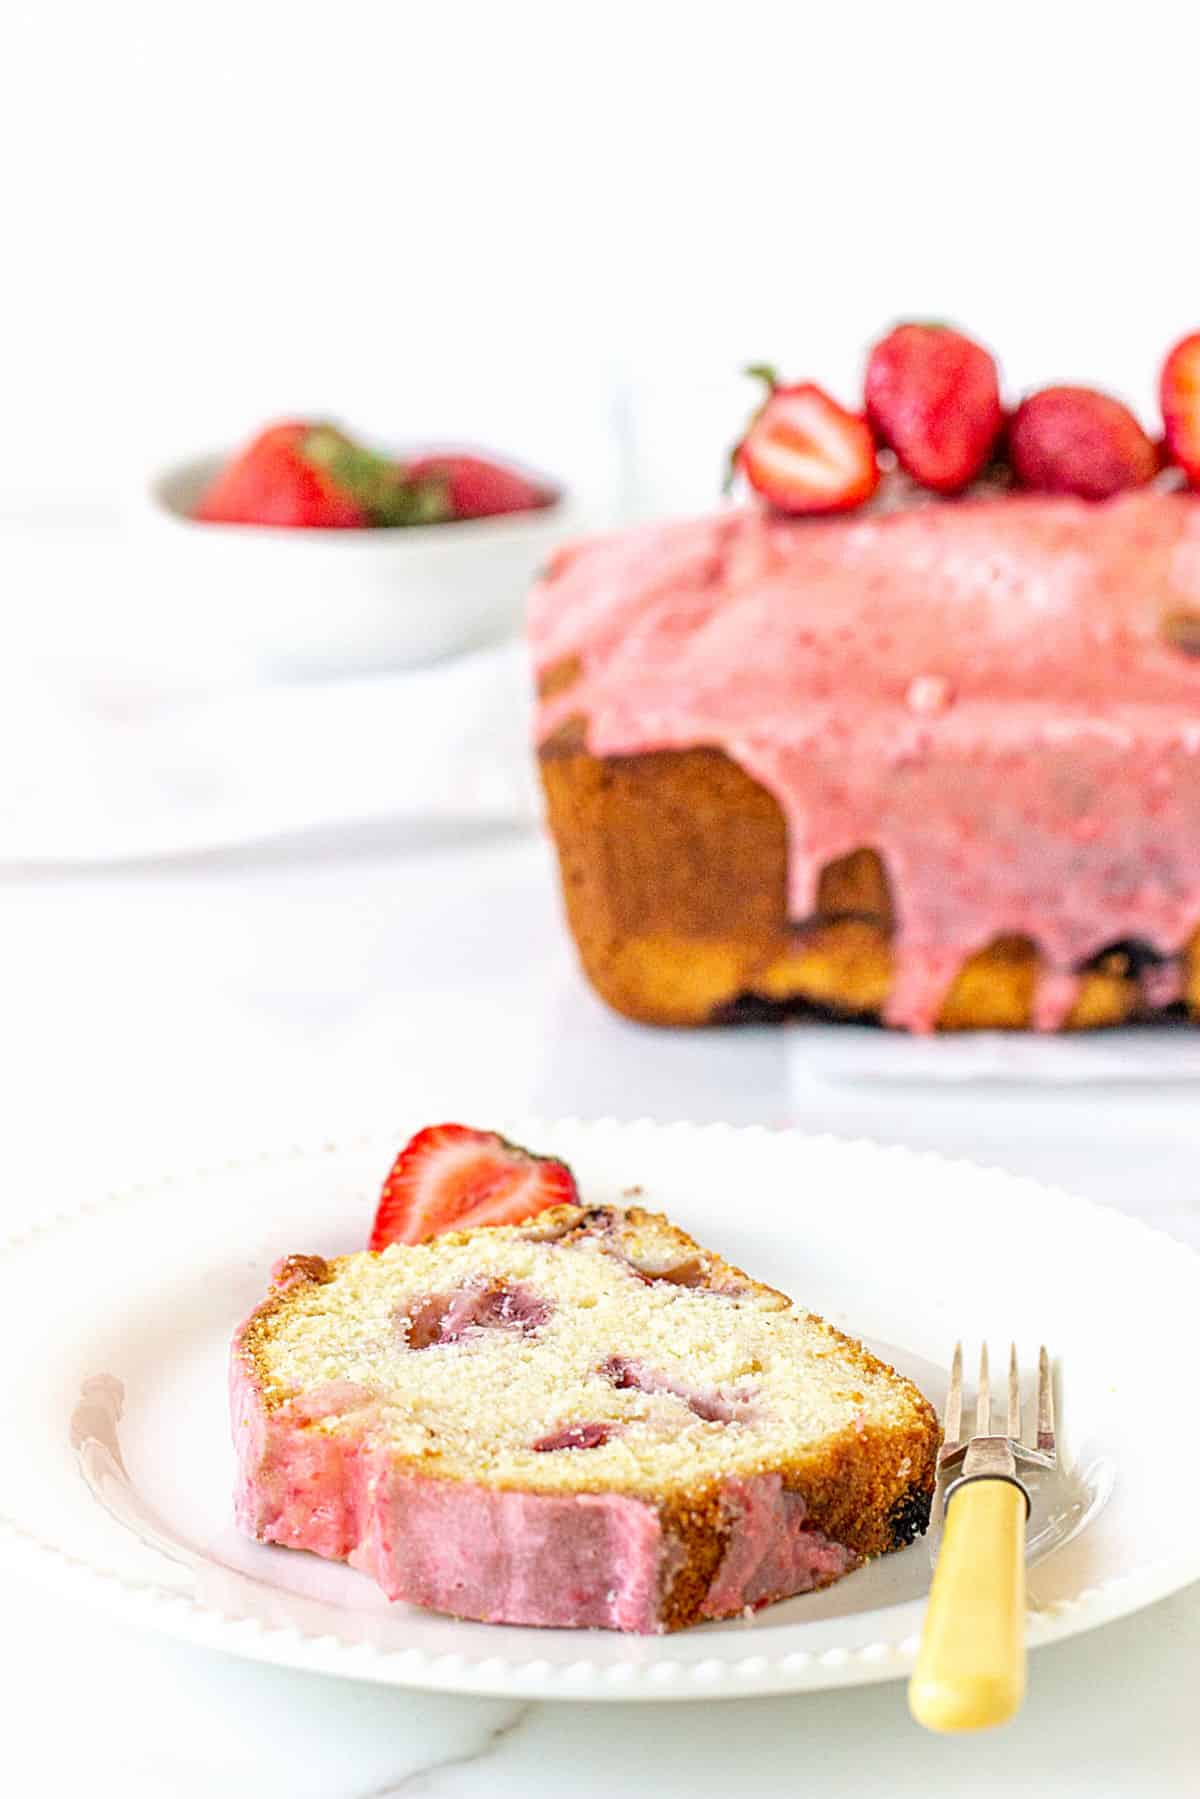 A slice of strawberry cake in white plate, whole cake with strawberries in white background